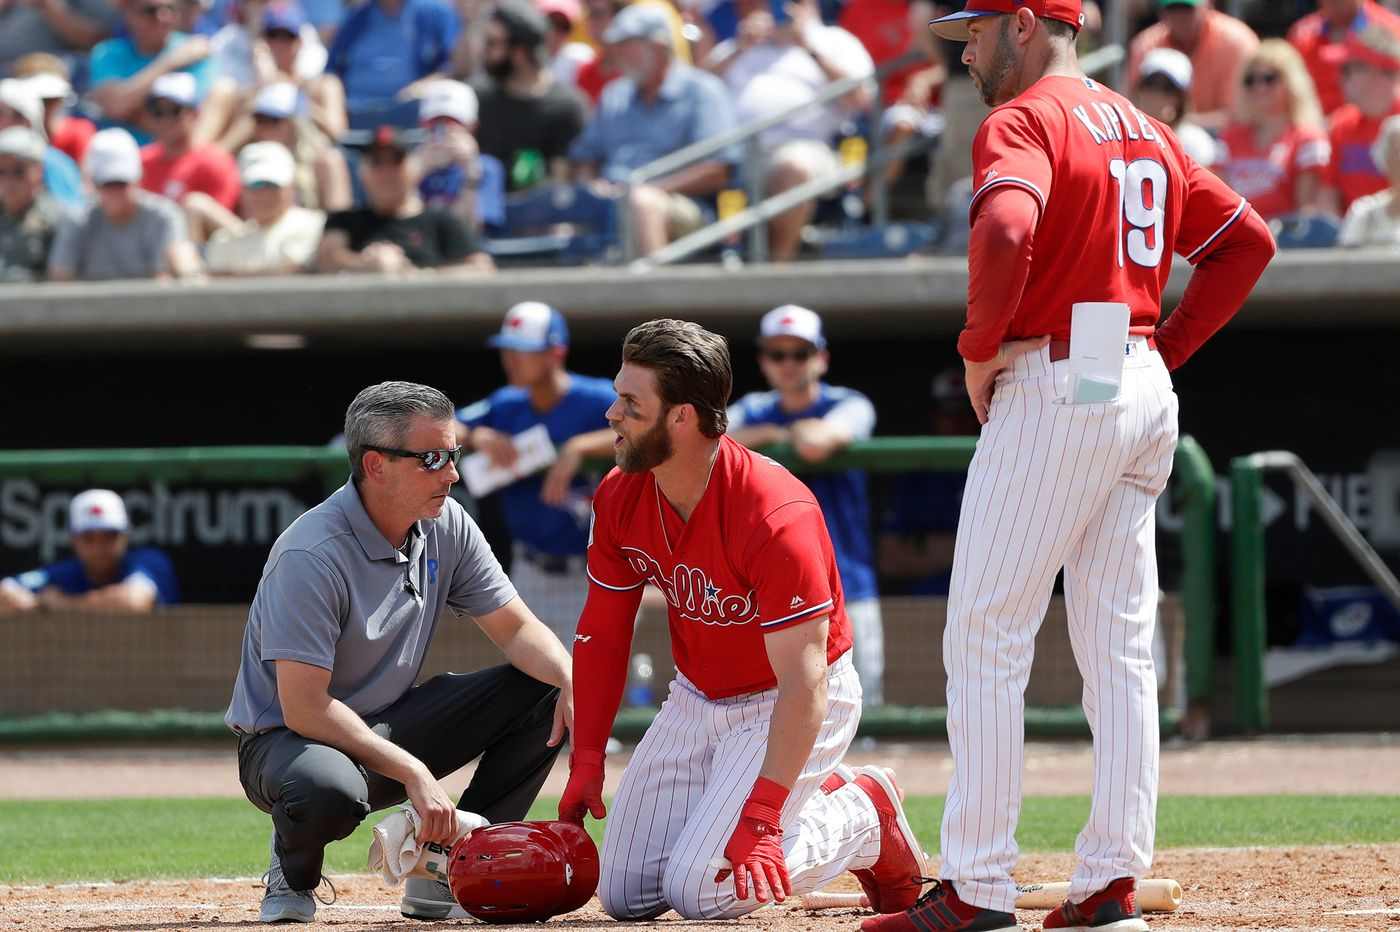 Bryce Harper's at-bats, Jake Arrieta's starts are big Phillies storylines in final week of spring training | Extra Innings